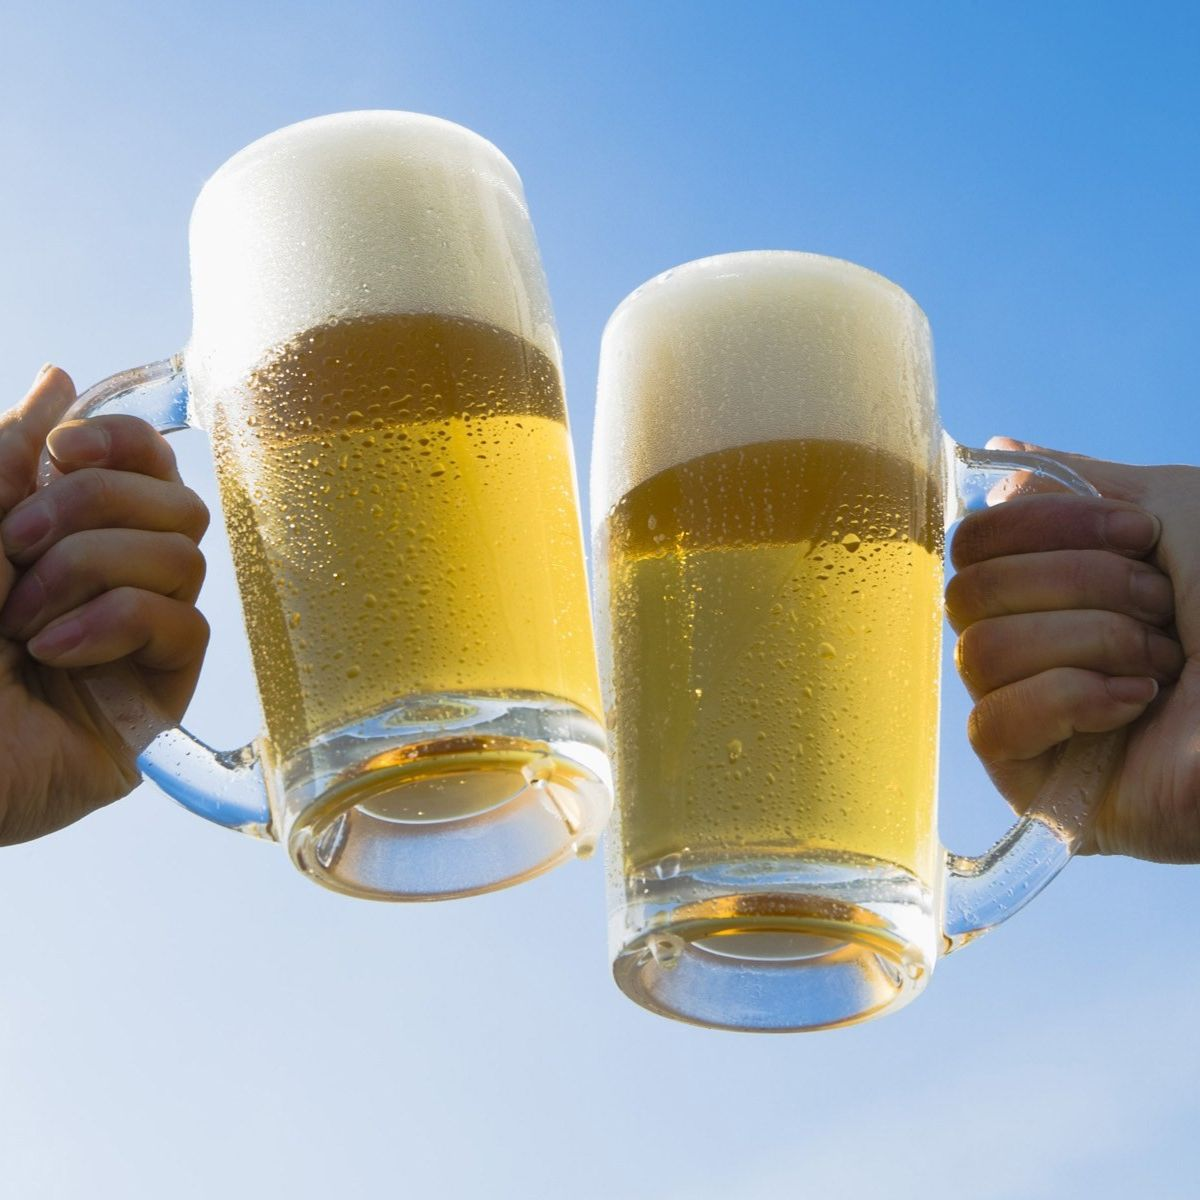 Beer Craft in Seville Tour | Tours in Seville | Touristic routes in Seville